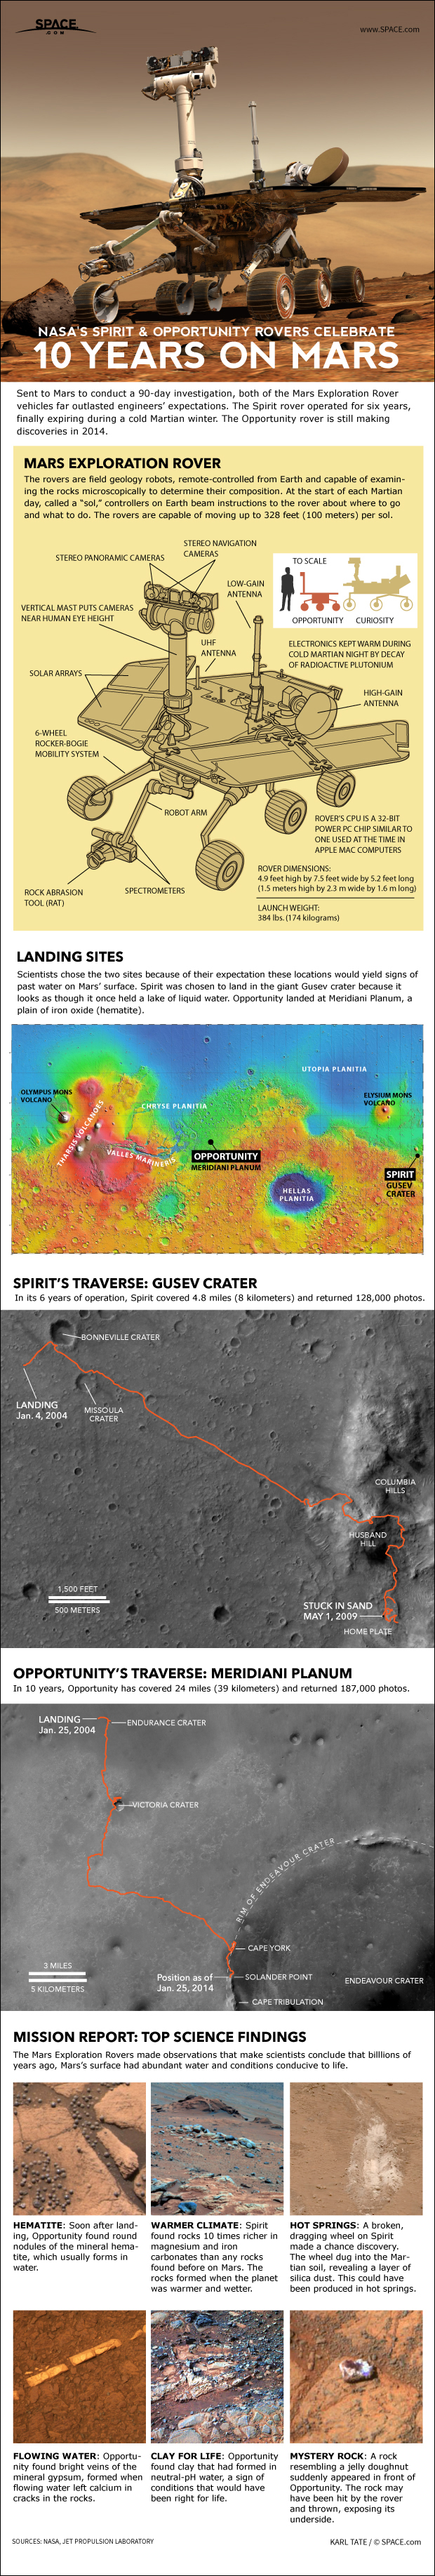 How NASA's Mars Rovers Spirit and Opportunity Work (Infographic)